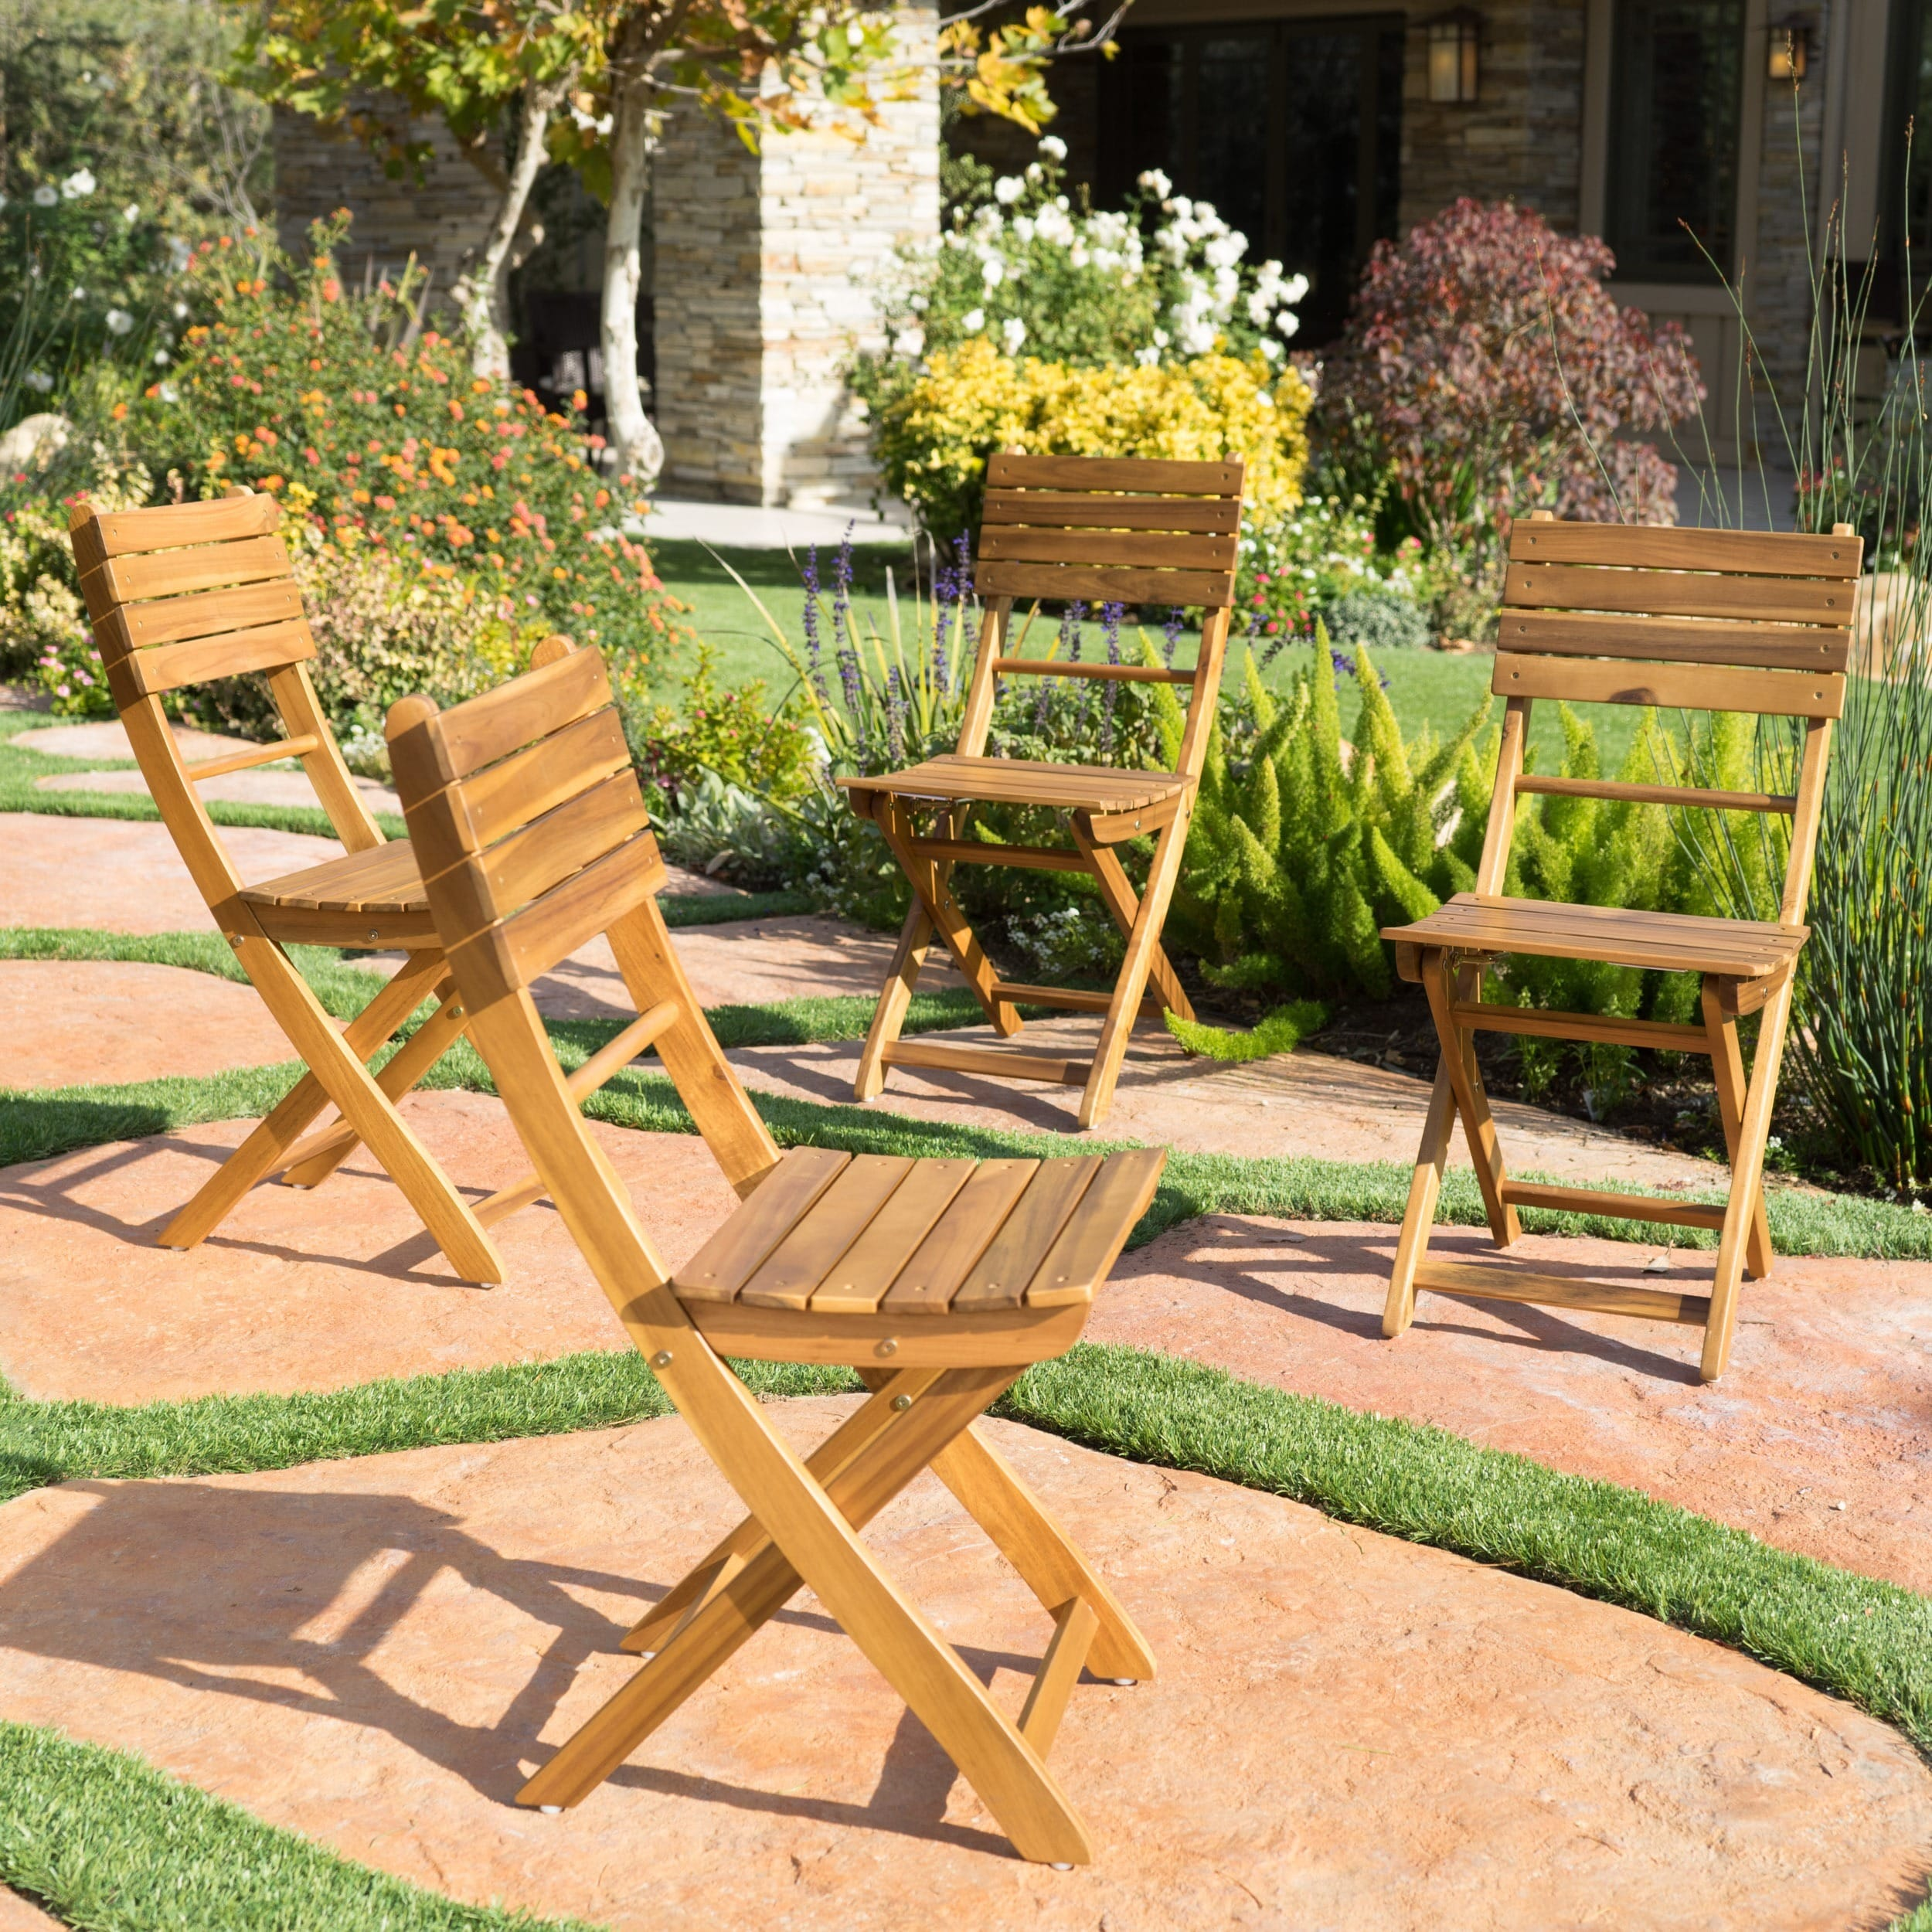 Positano Outdoor Acacia Wood Folding Dining Chair Set of 4 by